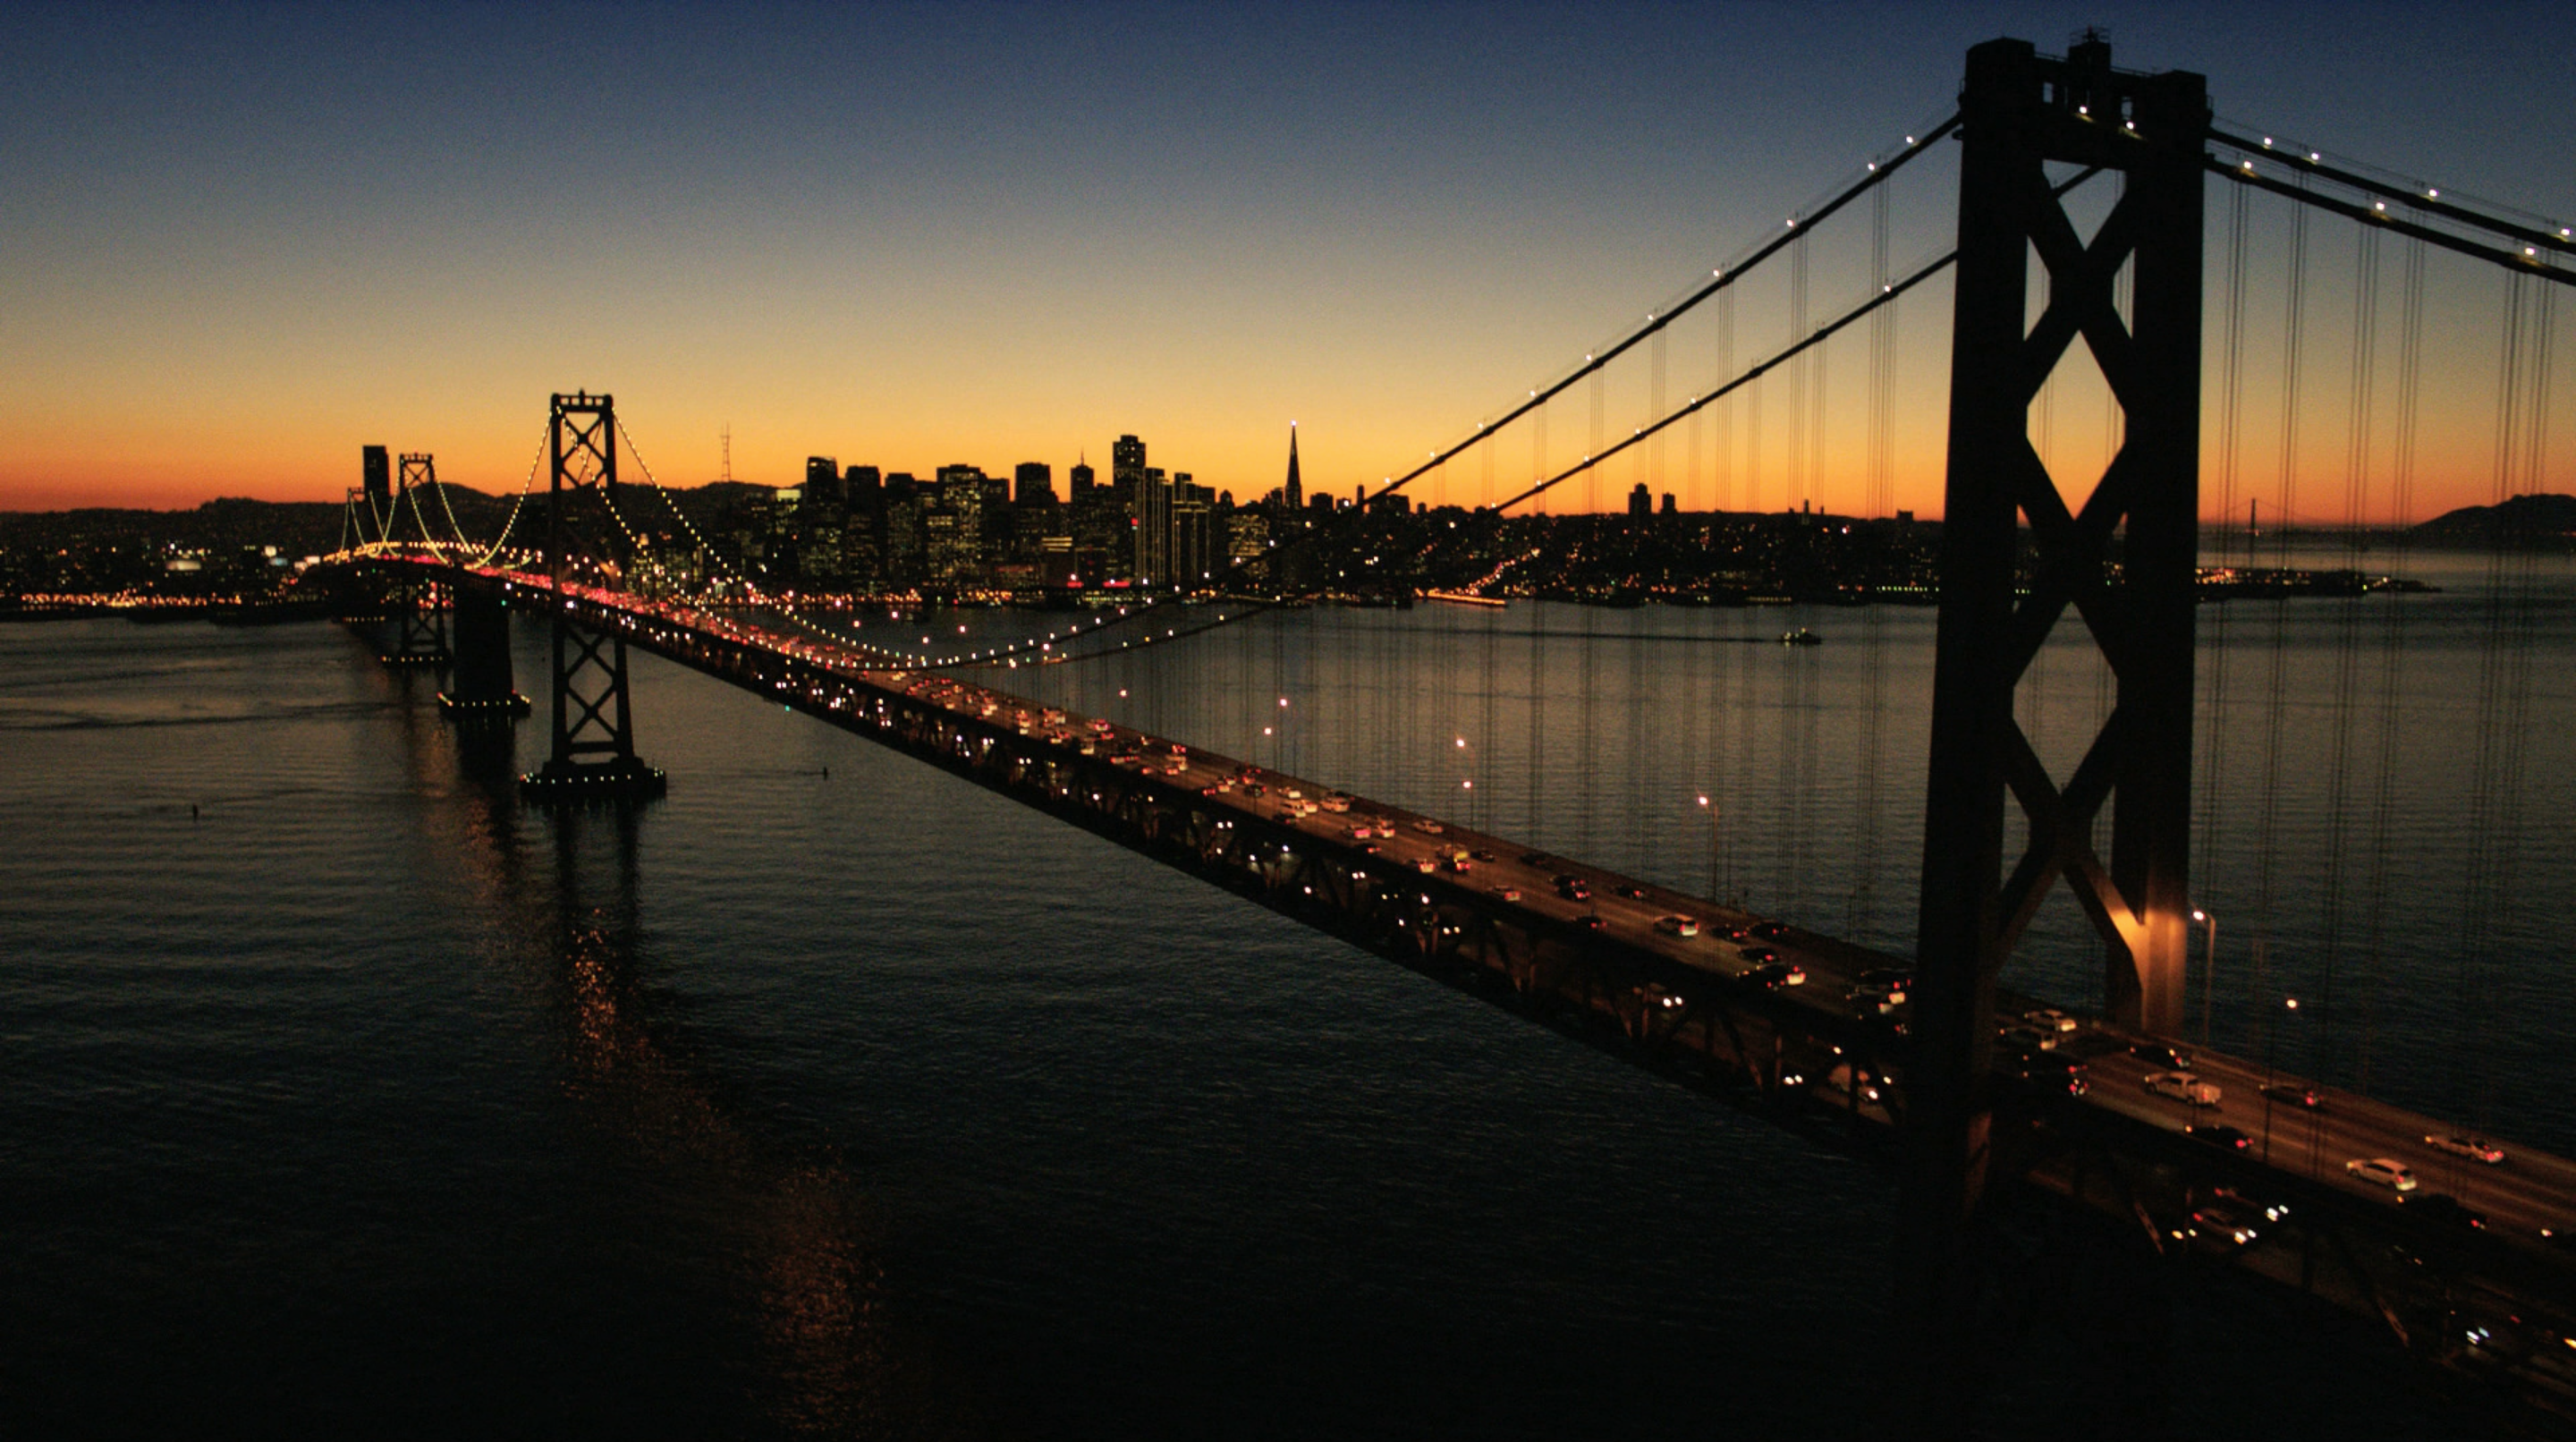 Google experiments in local news with an app called for Bay bridge run 2016